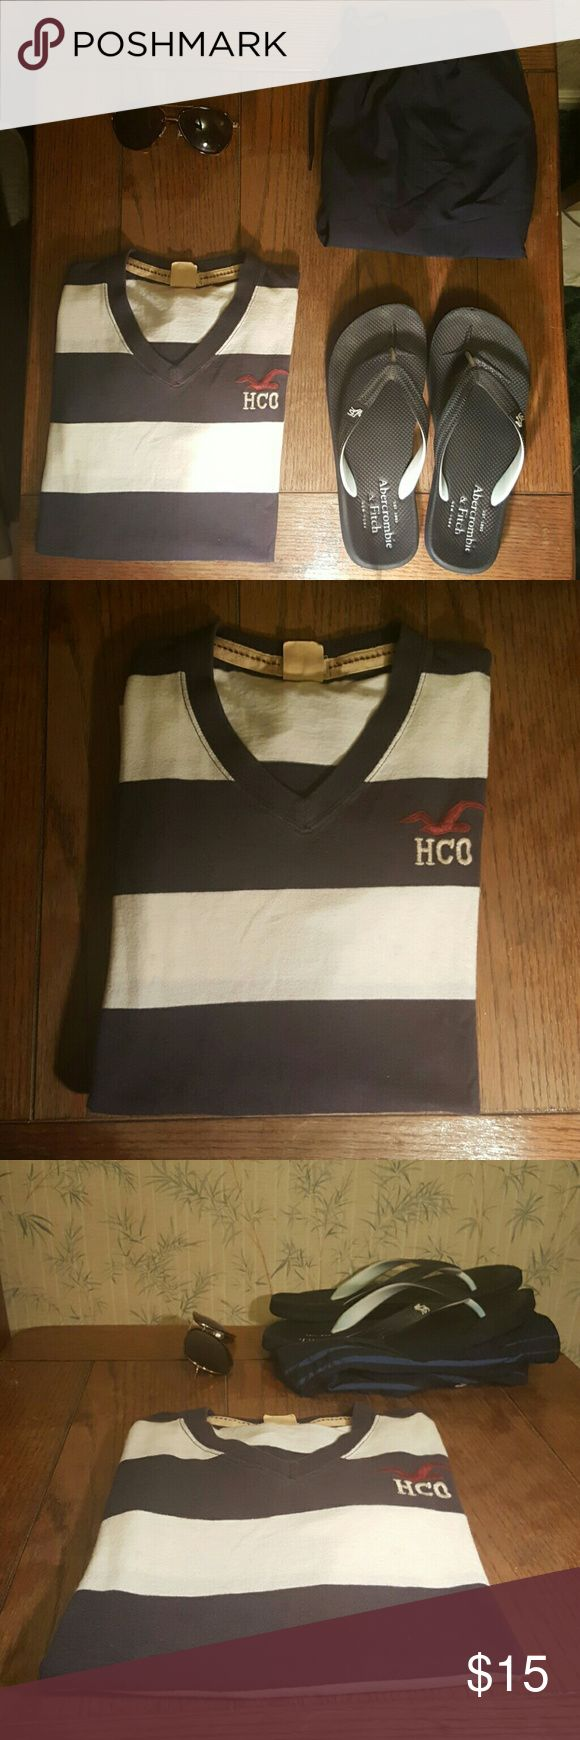 HOLLISTER TEE (small) Cotton vneck striped tee! ready to hit DA beach ? Perfect in style tee to make you look like you own that beach.you are the sailor in this shirt You Can dress it up with a good old pair of jeans and a cardigan or dress it down with shorts/swimsuit and flip flops!  never worn perfect mint condition! All reasonable offers accepted Hollister Shirts Tees - Short Sleeve